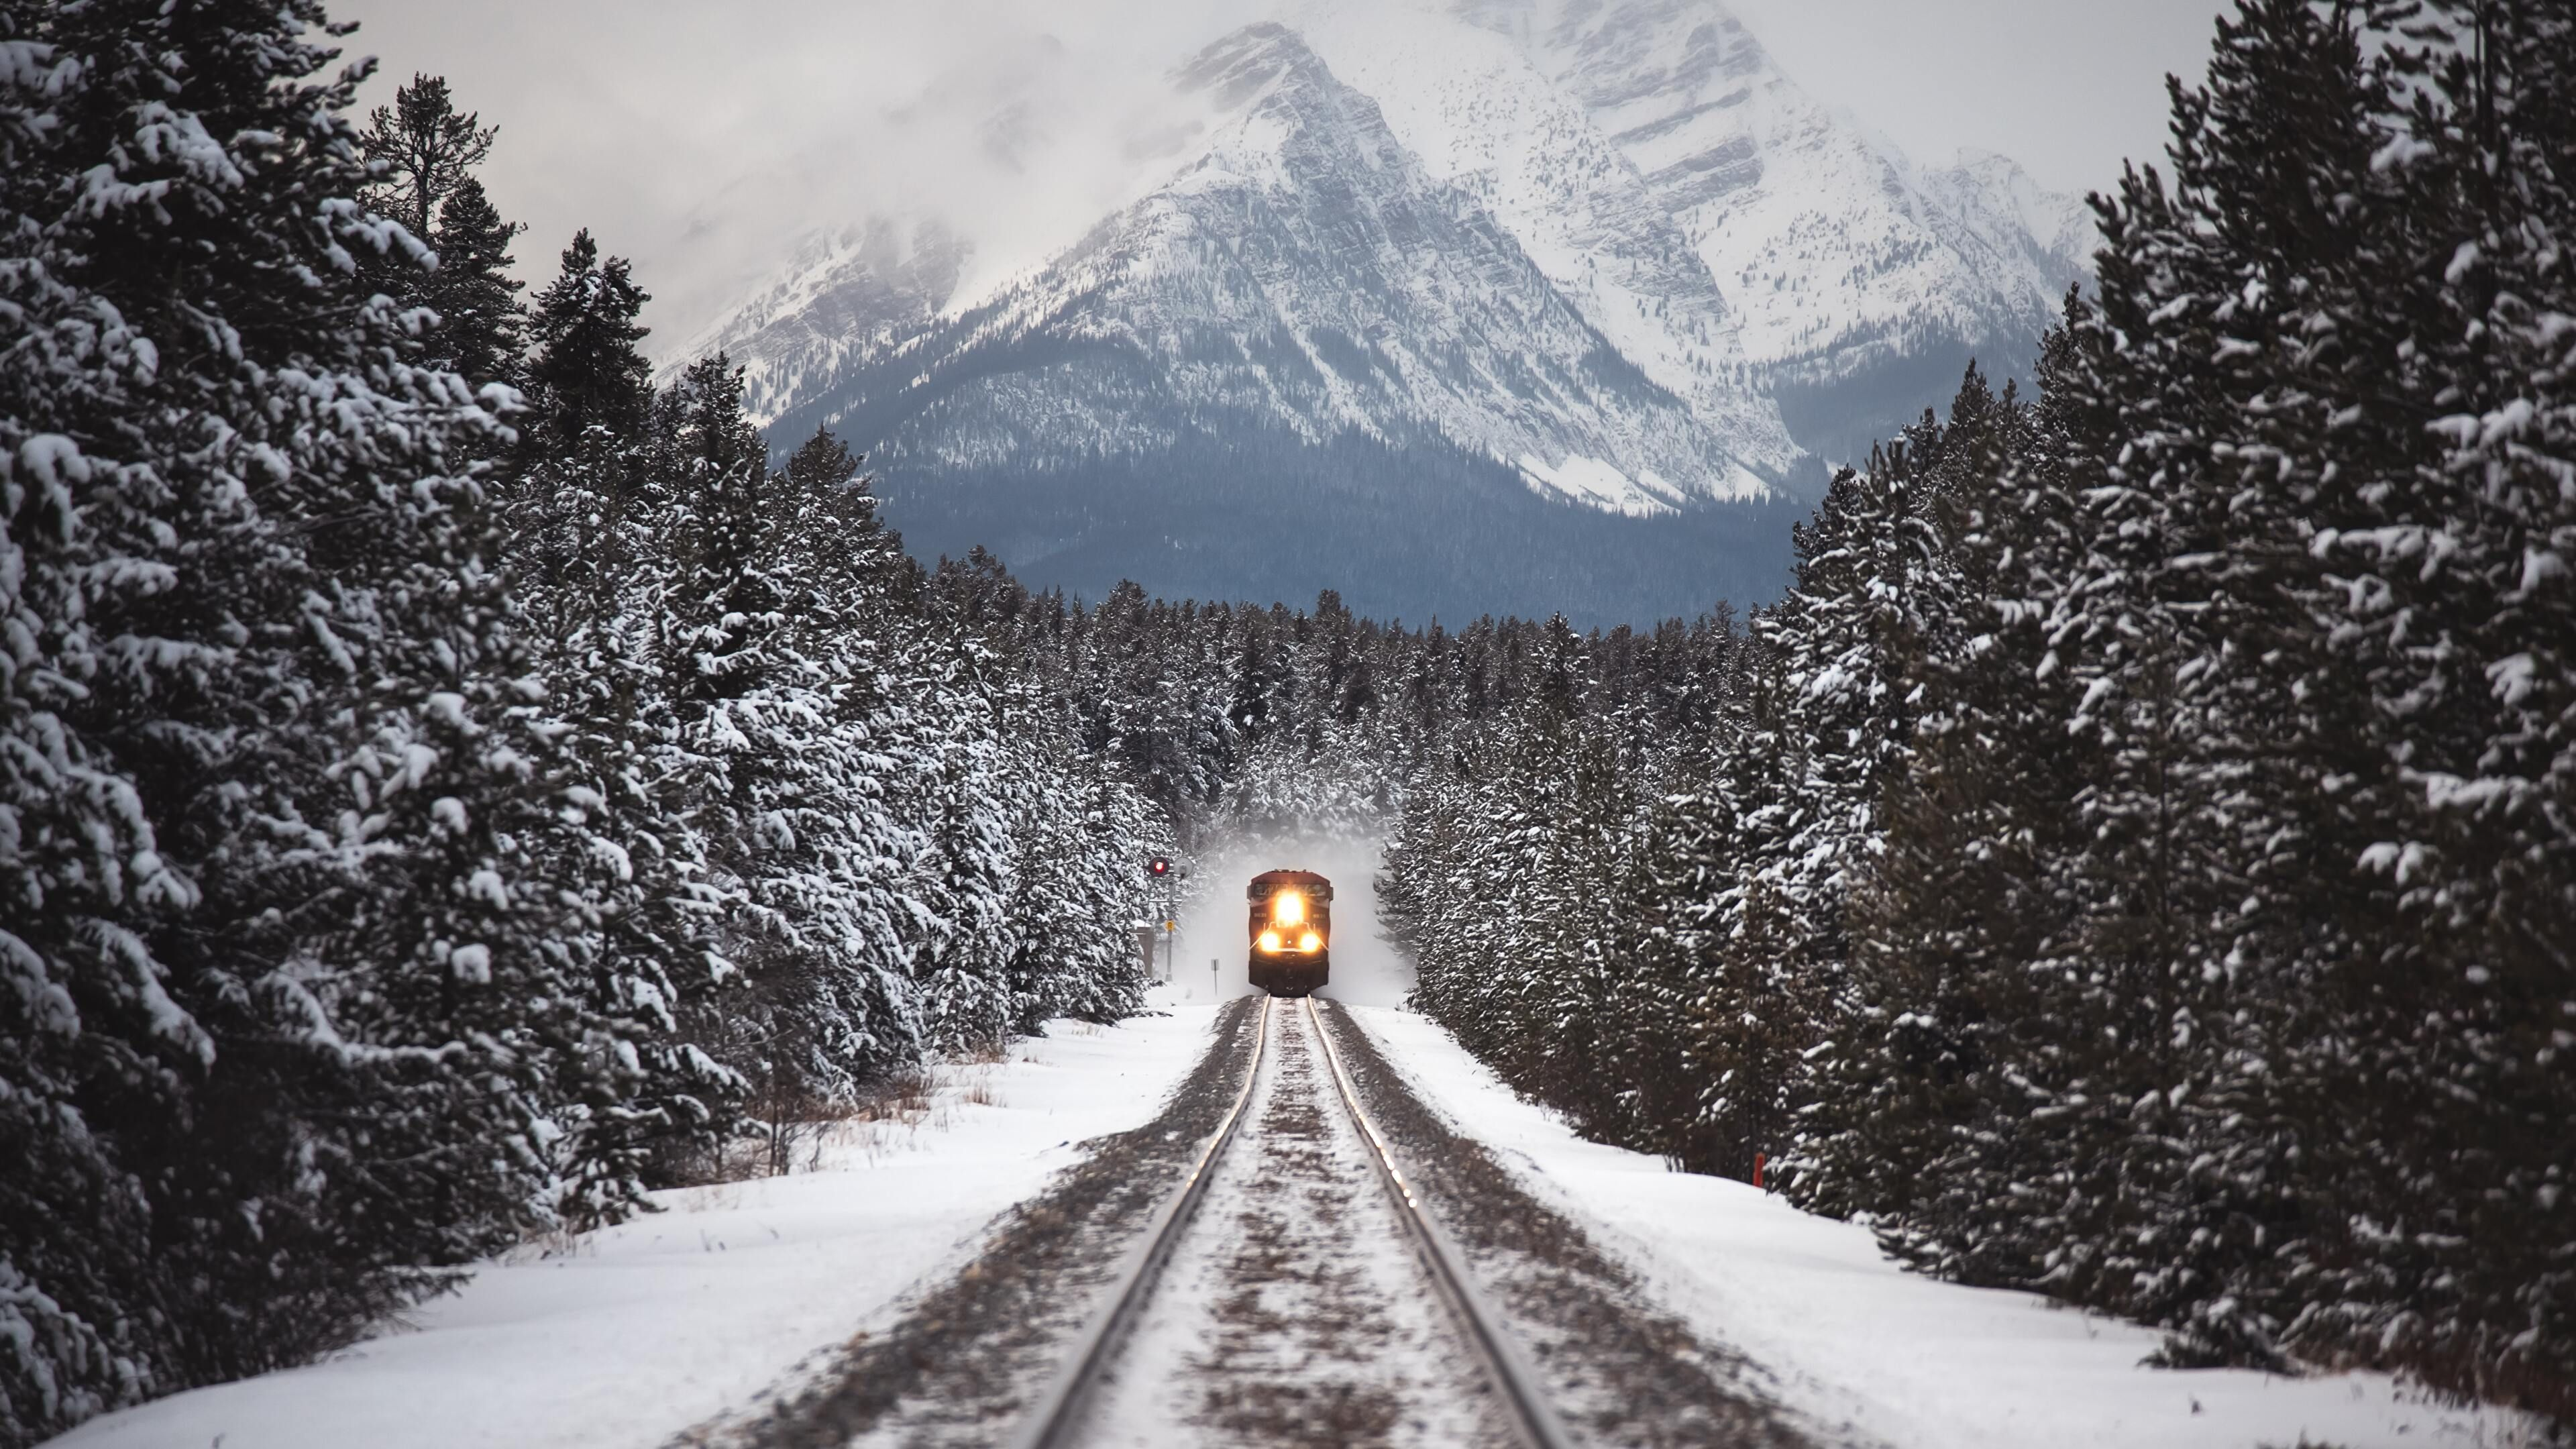 Snow On The Track Winter Travel Travel Aesthetic Train Tracks Hd wallpaper winter snow train forest